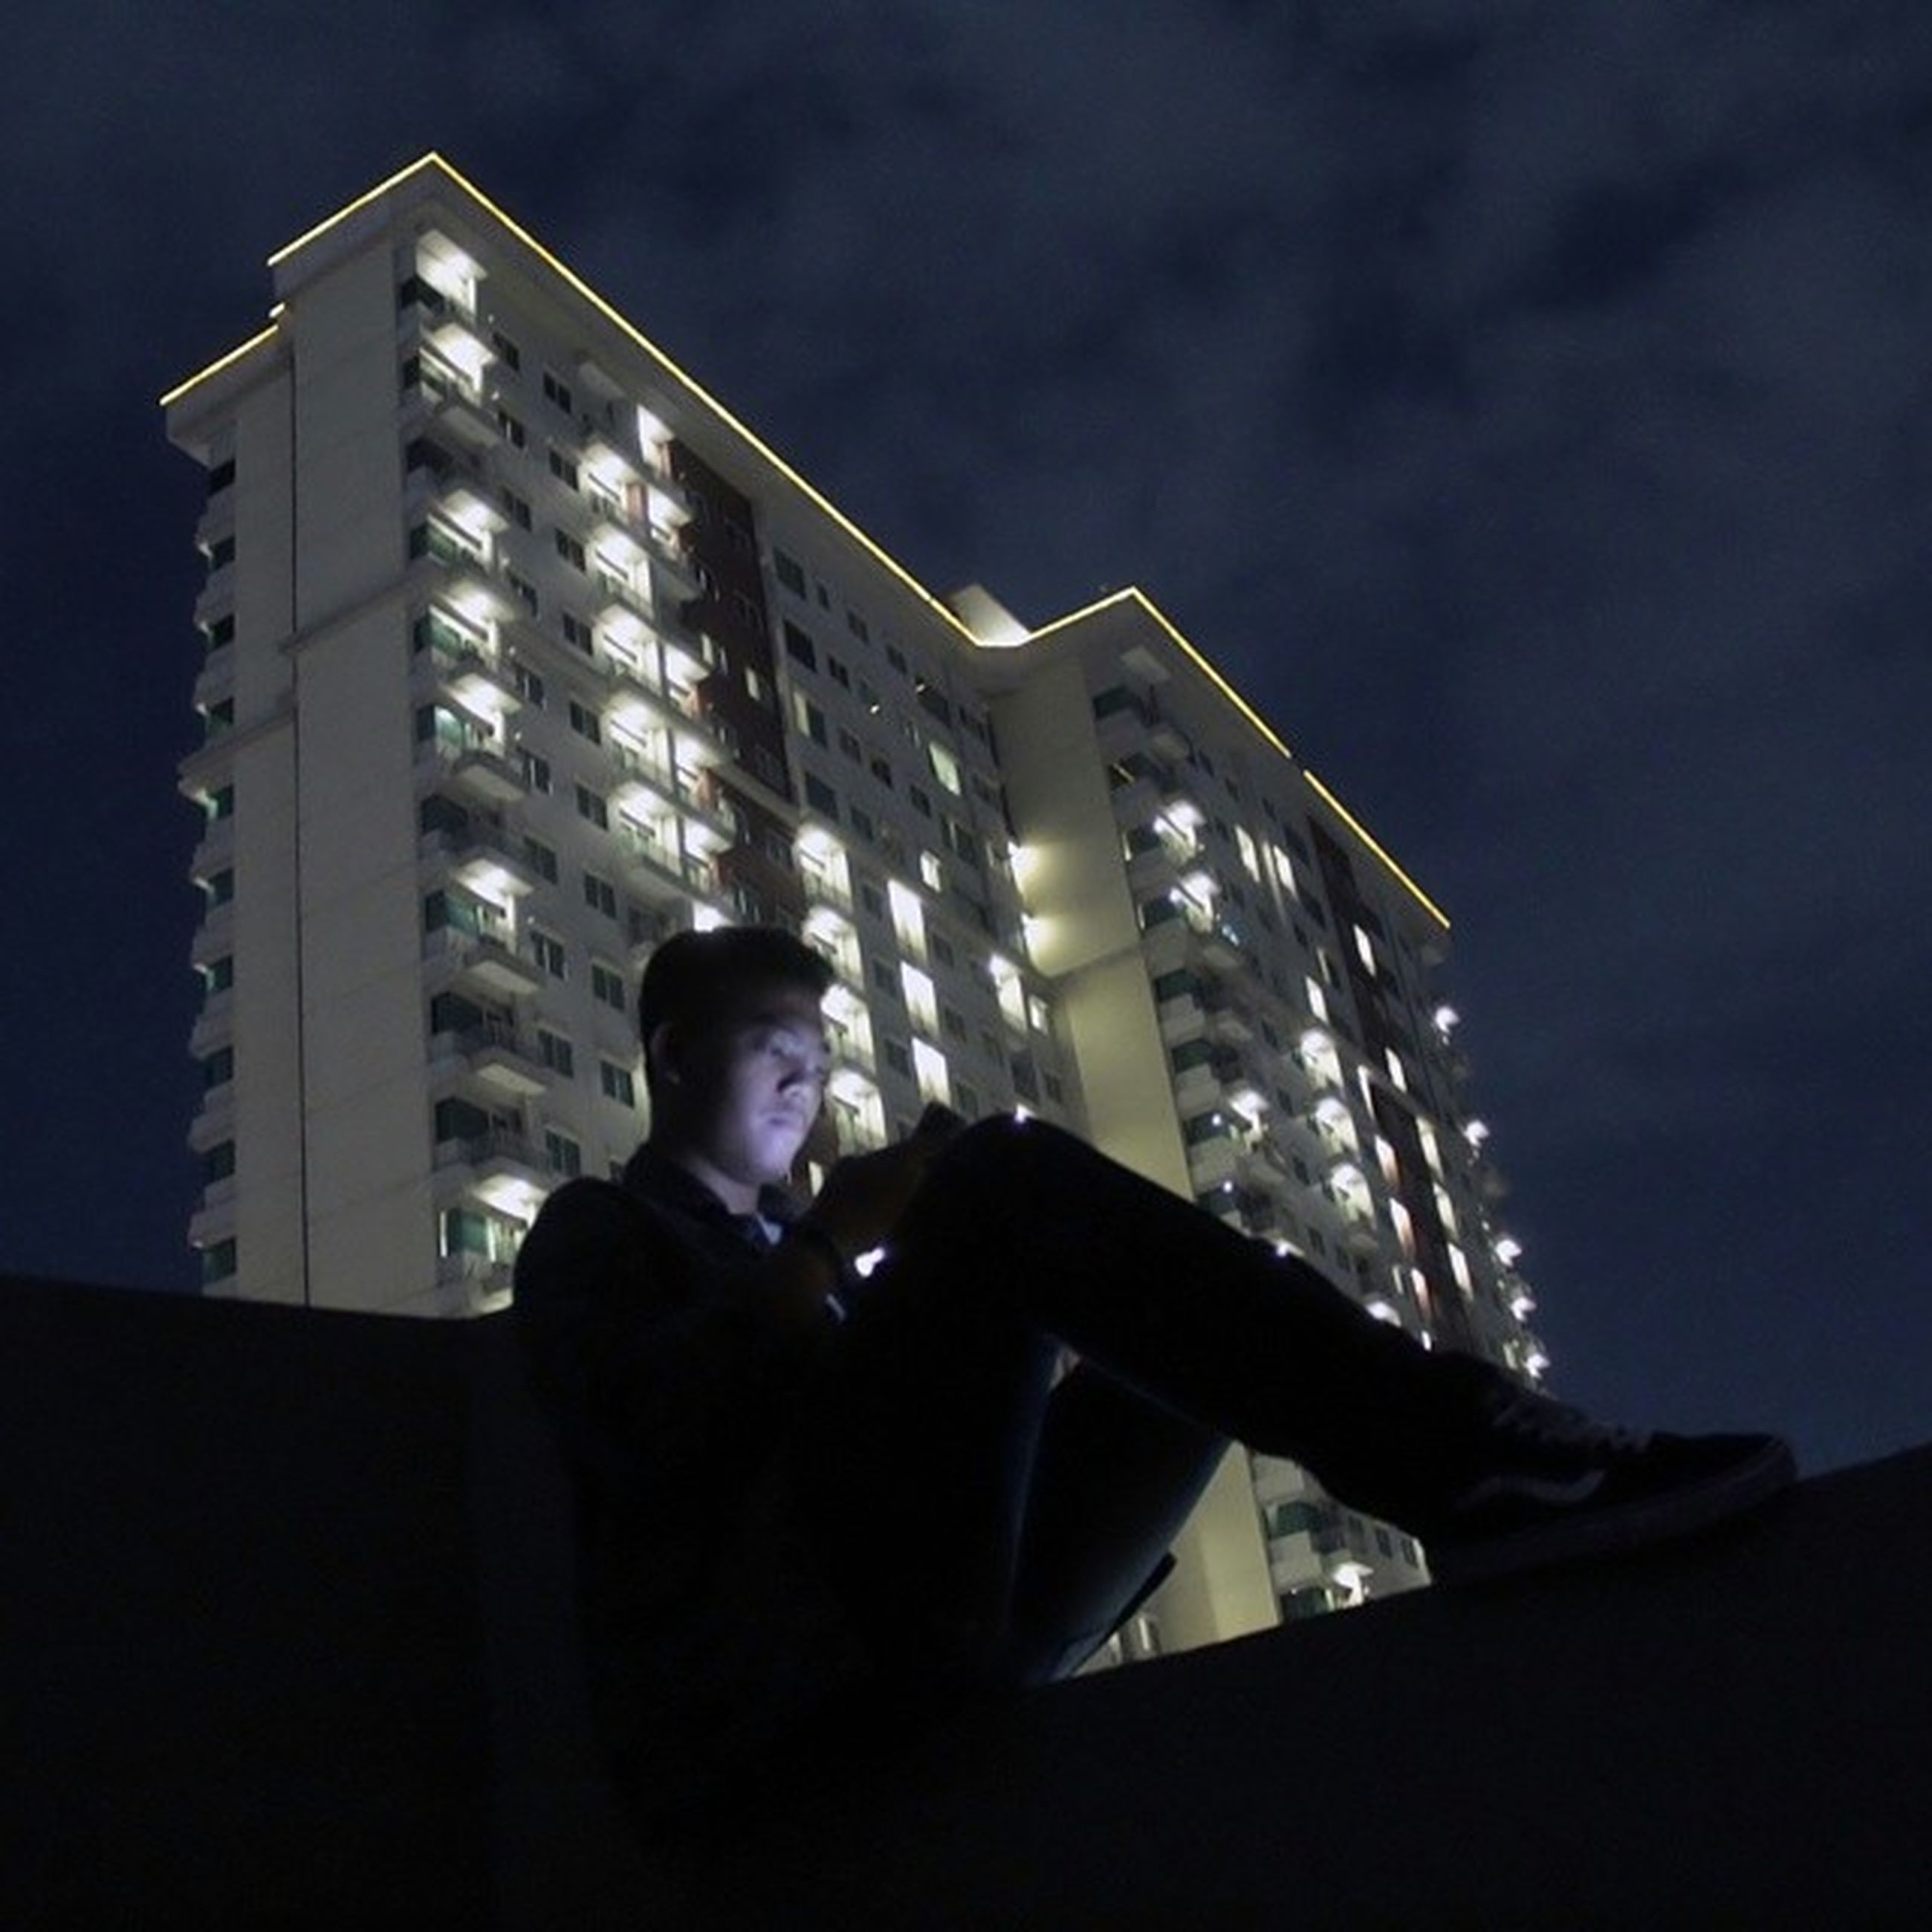 lifestyles, leisure activity, built structure, architecture, young adult, night, young men, headshot, low angle view, building exterior, sky, waist up, photographing, photography themes, side view, men, person, sitting